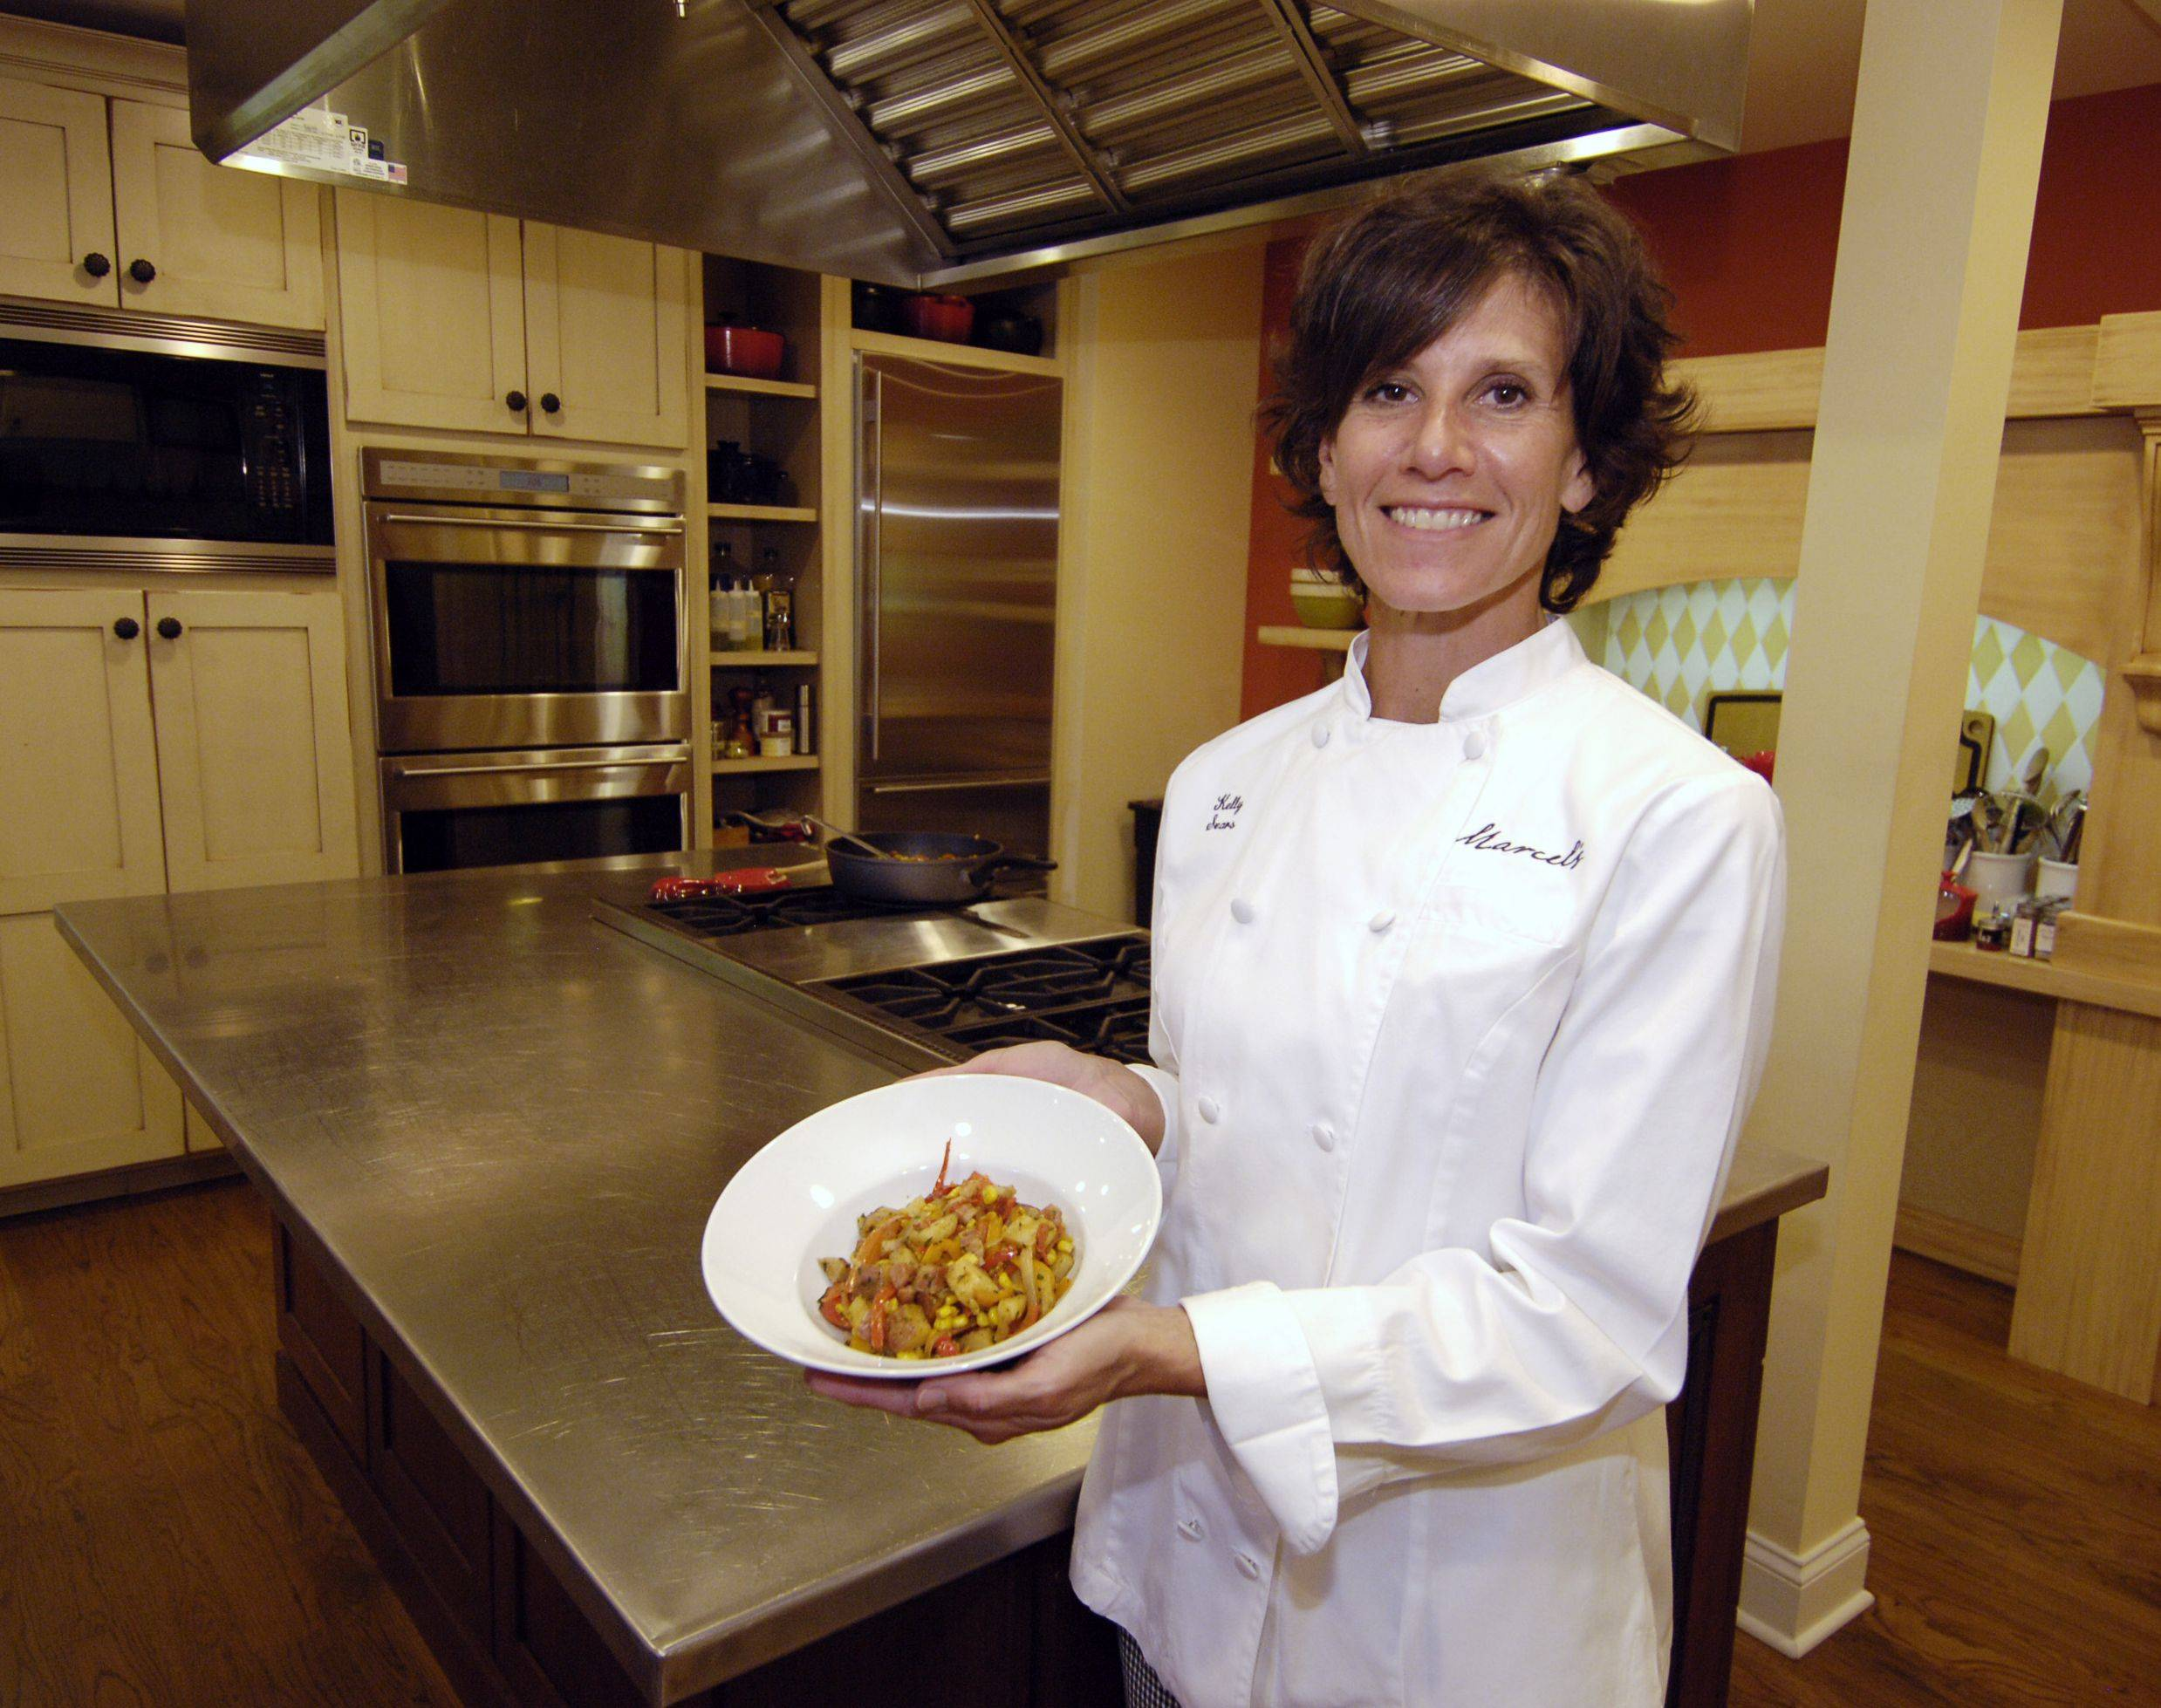 Chef Kelly Sears says this Corn Sauté with Pancetta, Potatoes and Peppers can be tweaked to reflect what's in season and what's in your pantry. Sears coordinates cooking classes at Marcel's Culinary Experience in Glen Ellyn.